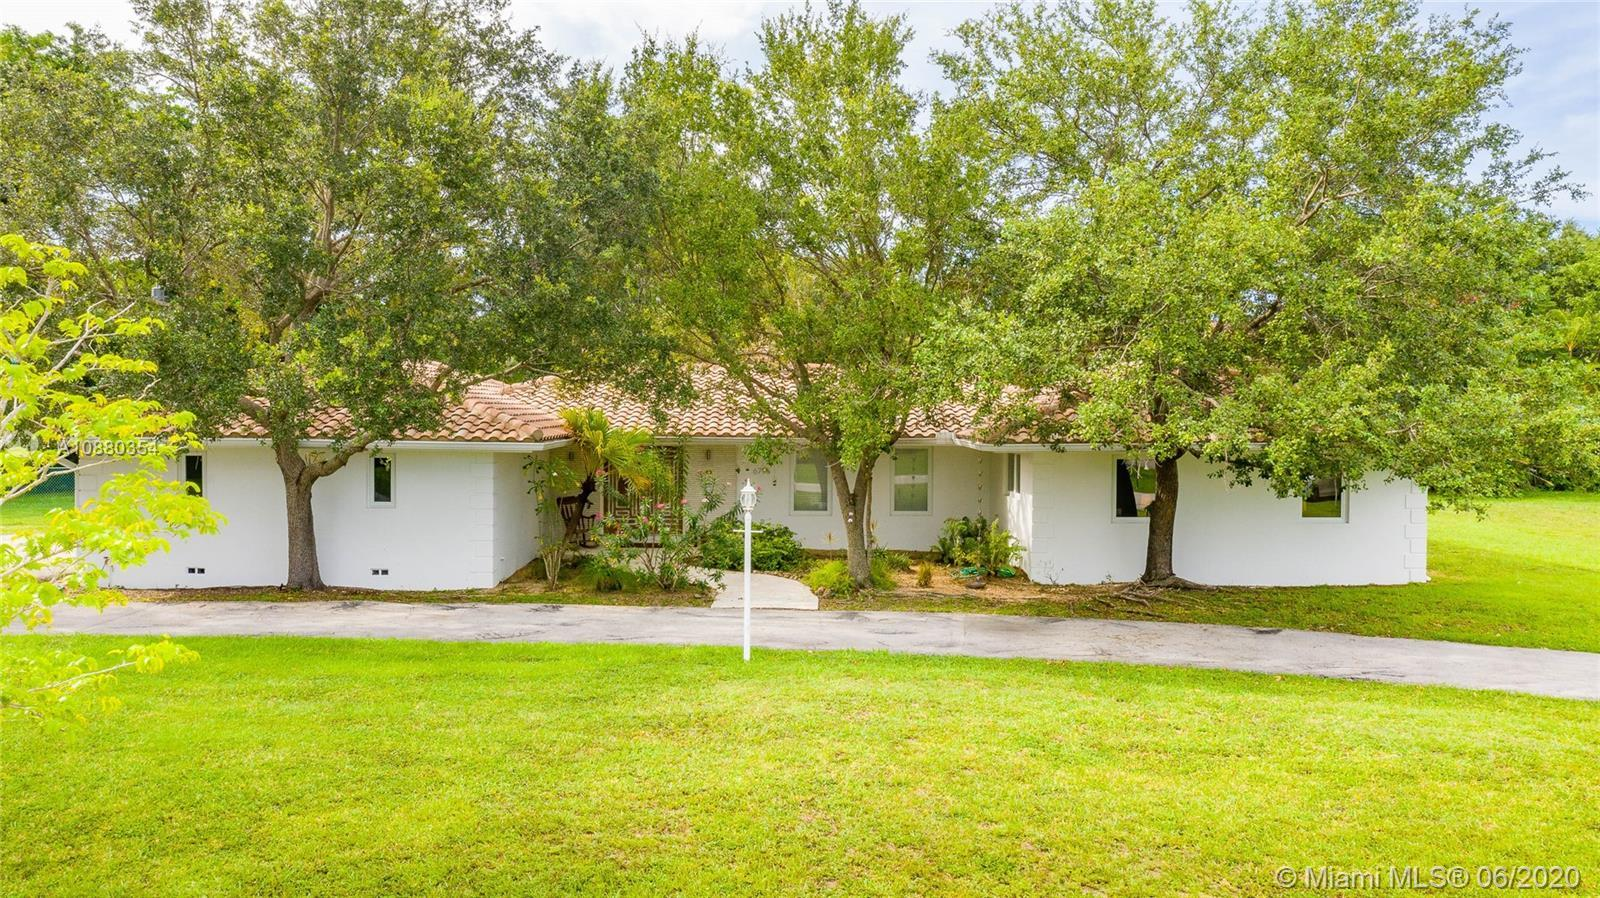 Rarely can you find a home of this caliber for under $1mm in Pinecrest. This spacious and bright hom